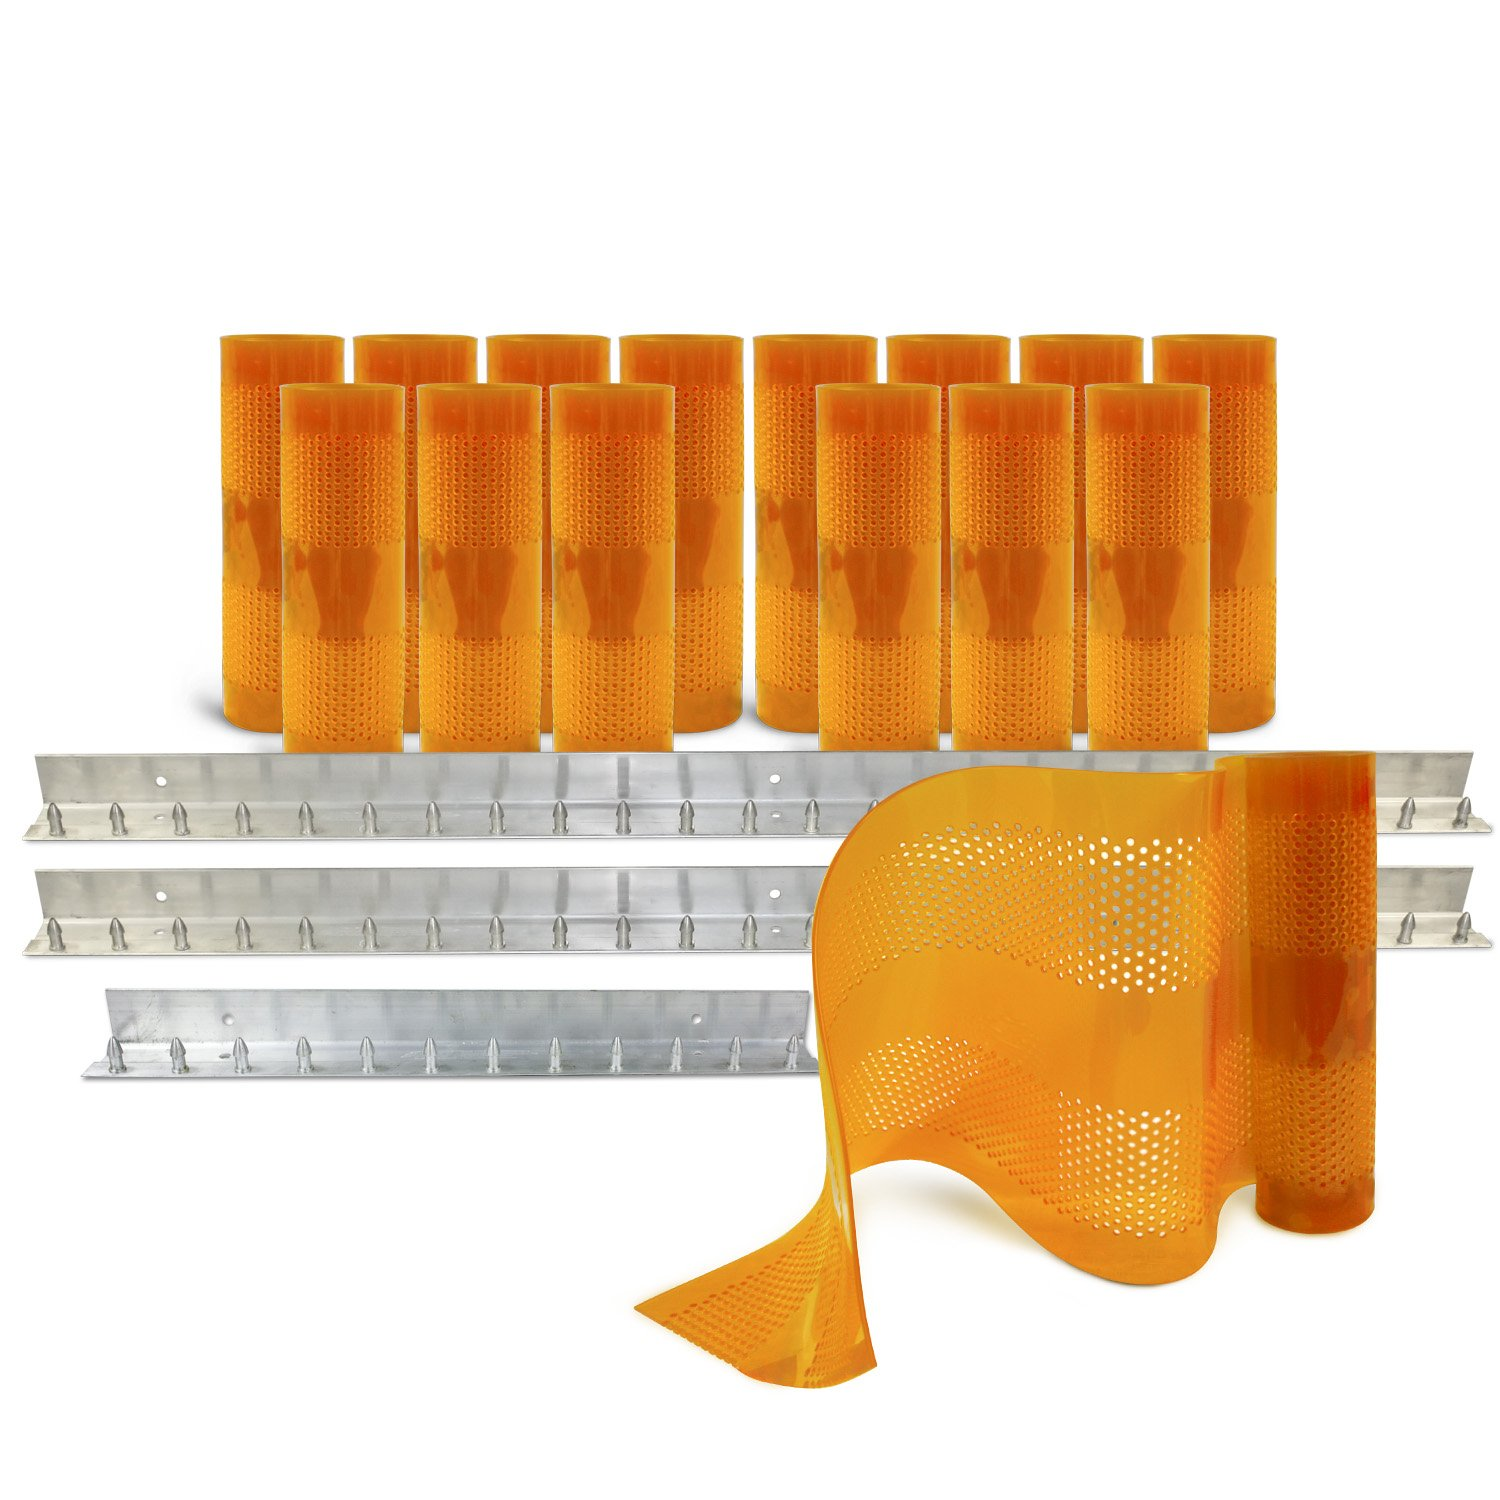 Aleco 443630 Clear-Flex II Standard AirStream Perforated PVC Strip Door Kit with MaxBullet Aluminum Mounting Hardware, 12'' Width x 120'' Height x 0.12'' Thick, Amber